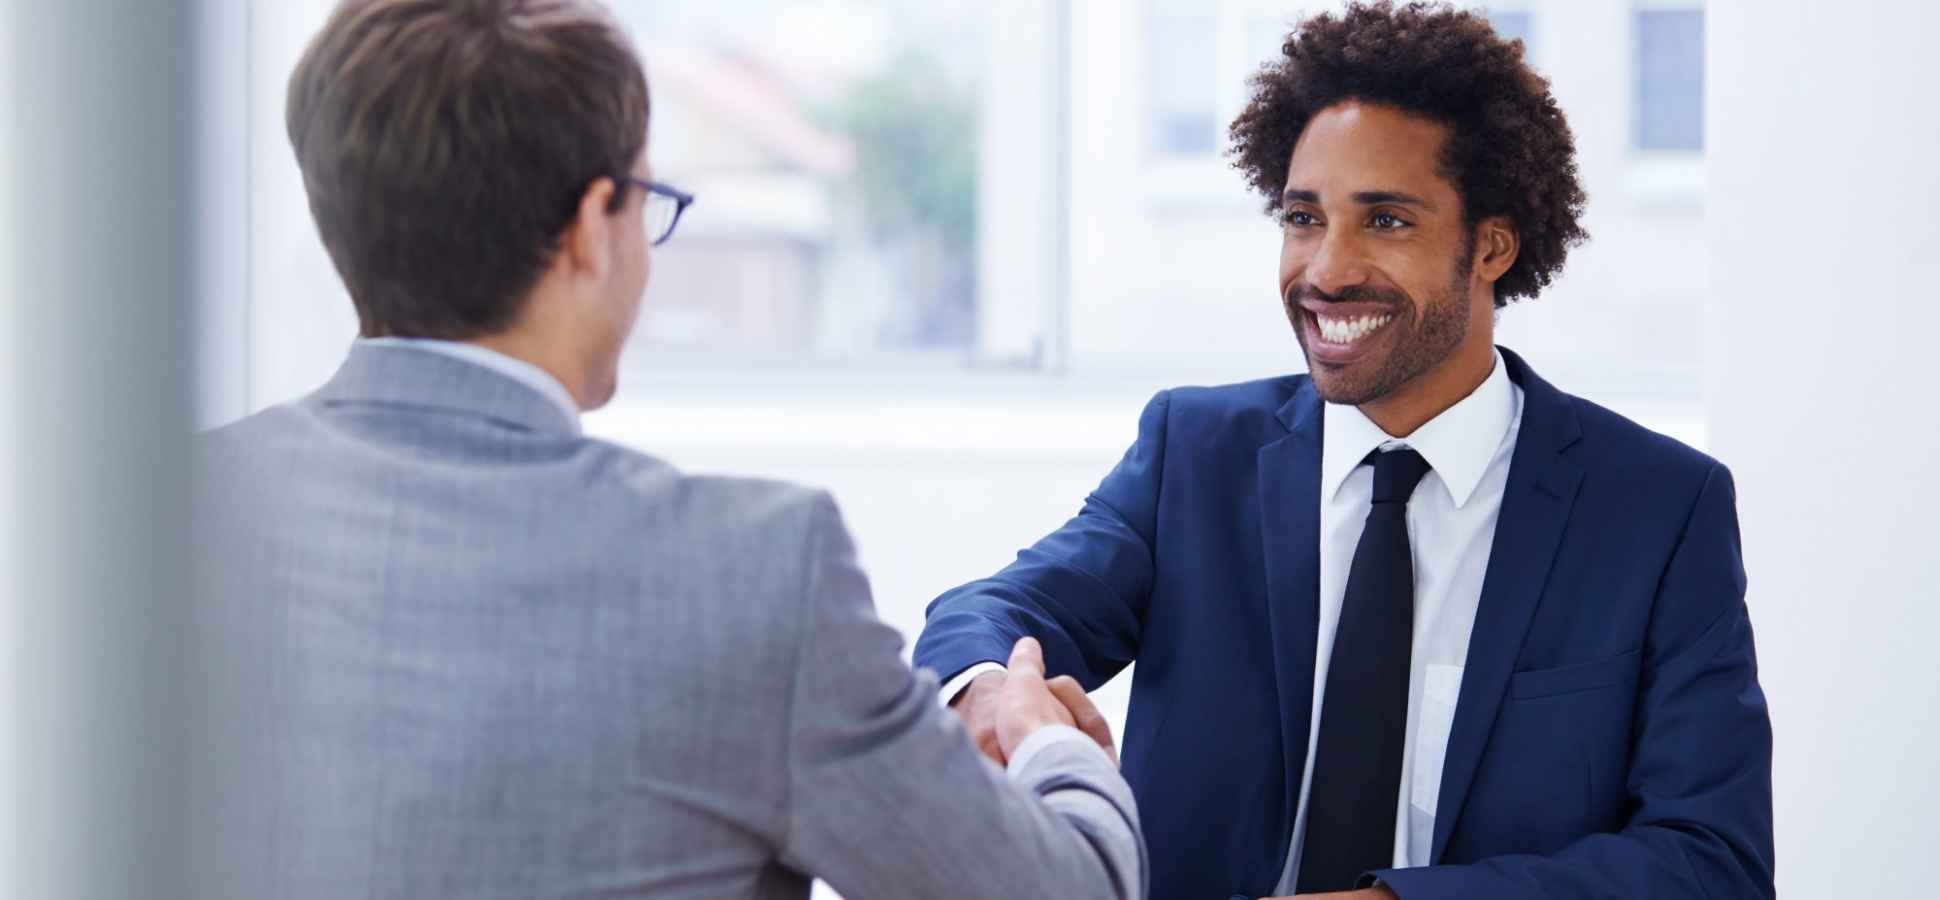 This Ridiculous Job Interview Question Always Catches People Off Guard (That's Why It's Genius)